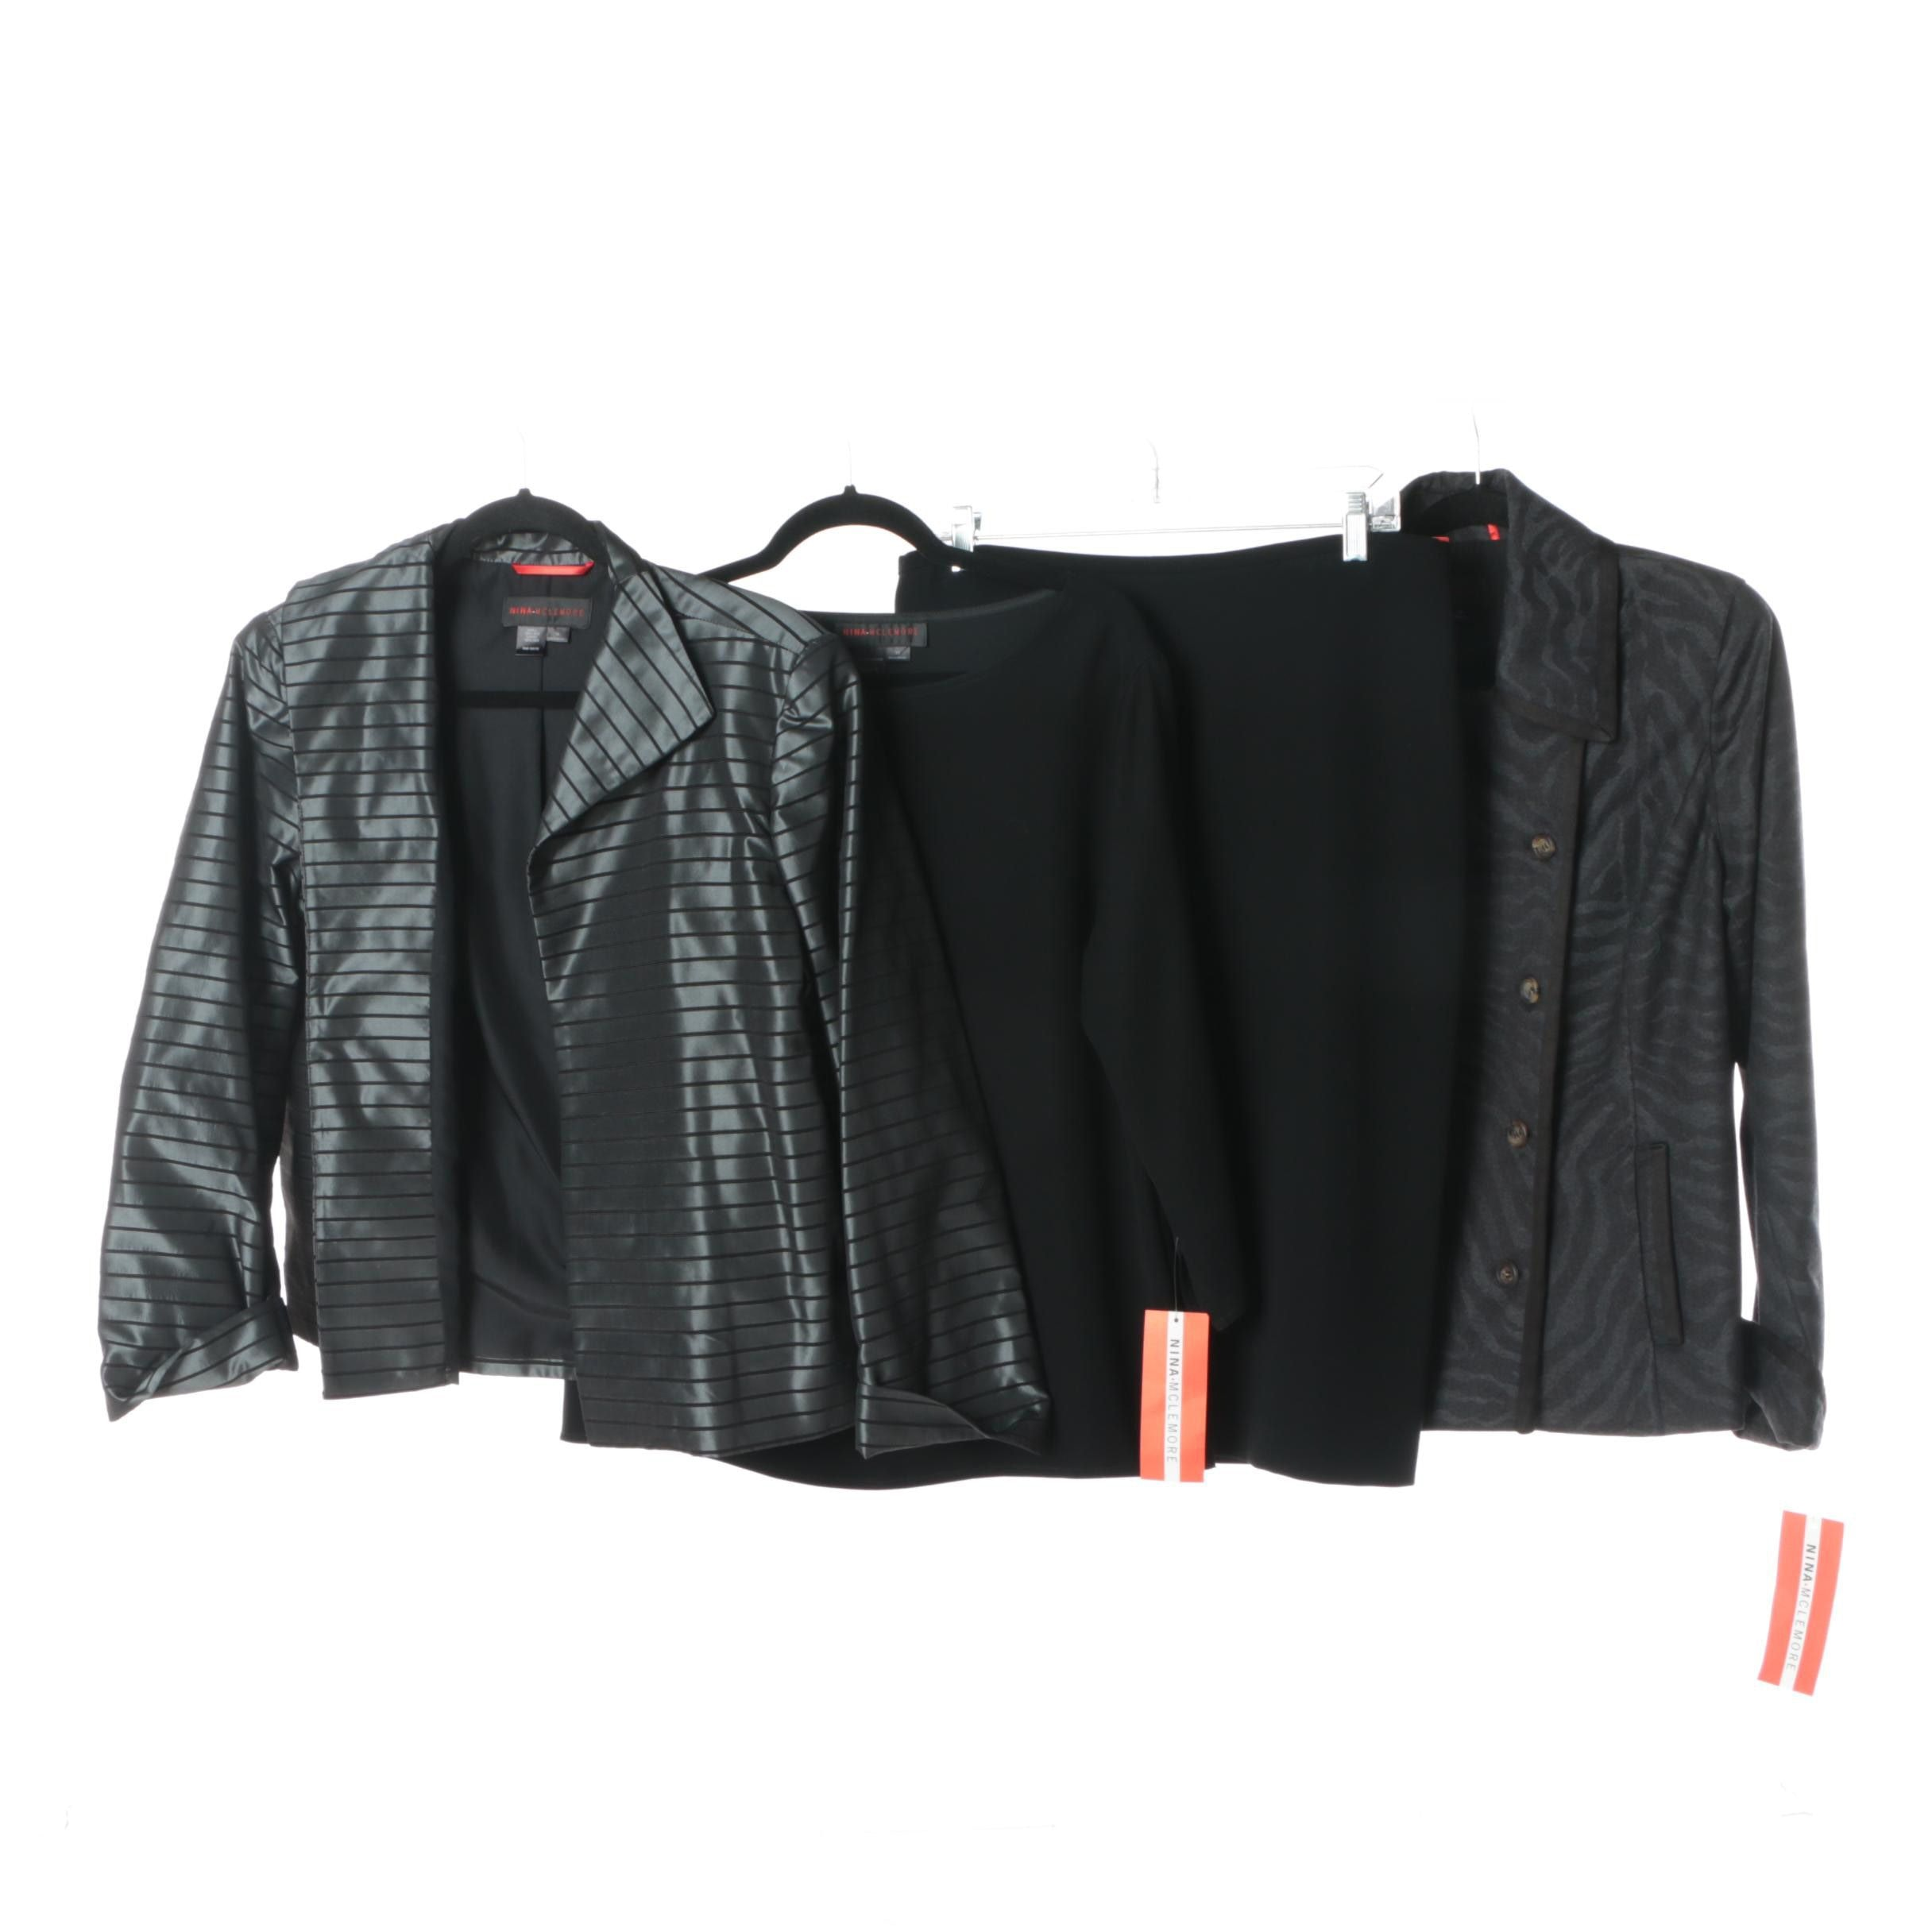 Nina McLemore Blazers, Top and Skirt